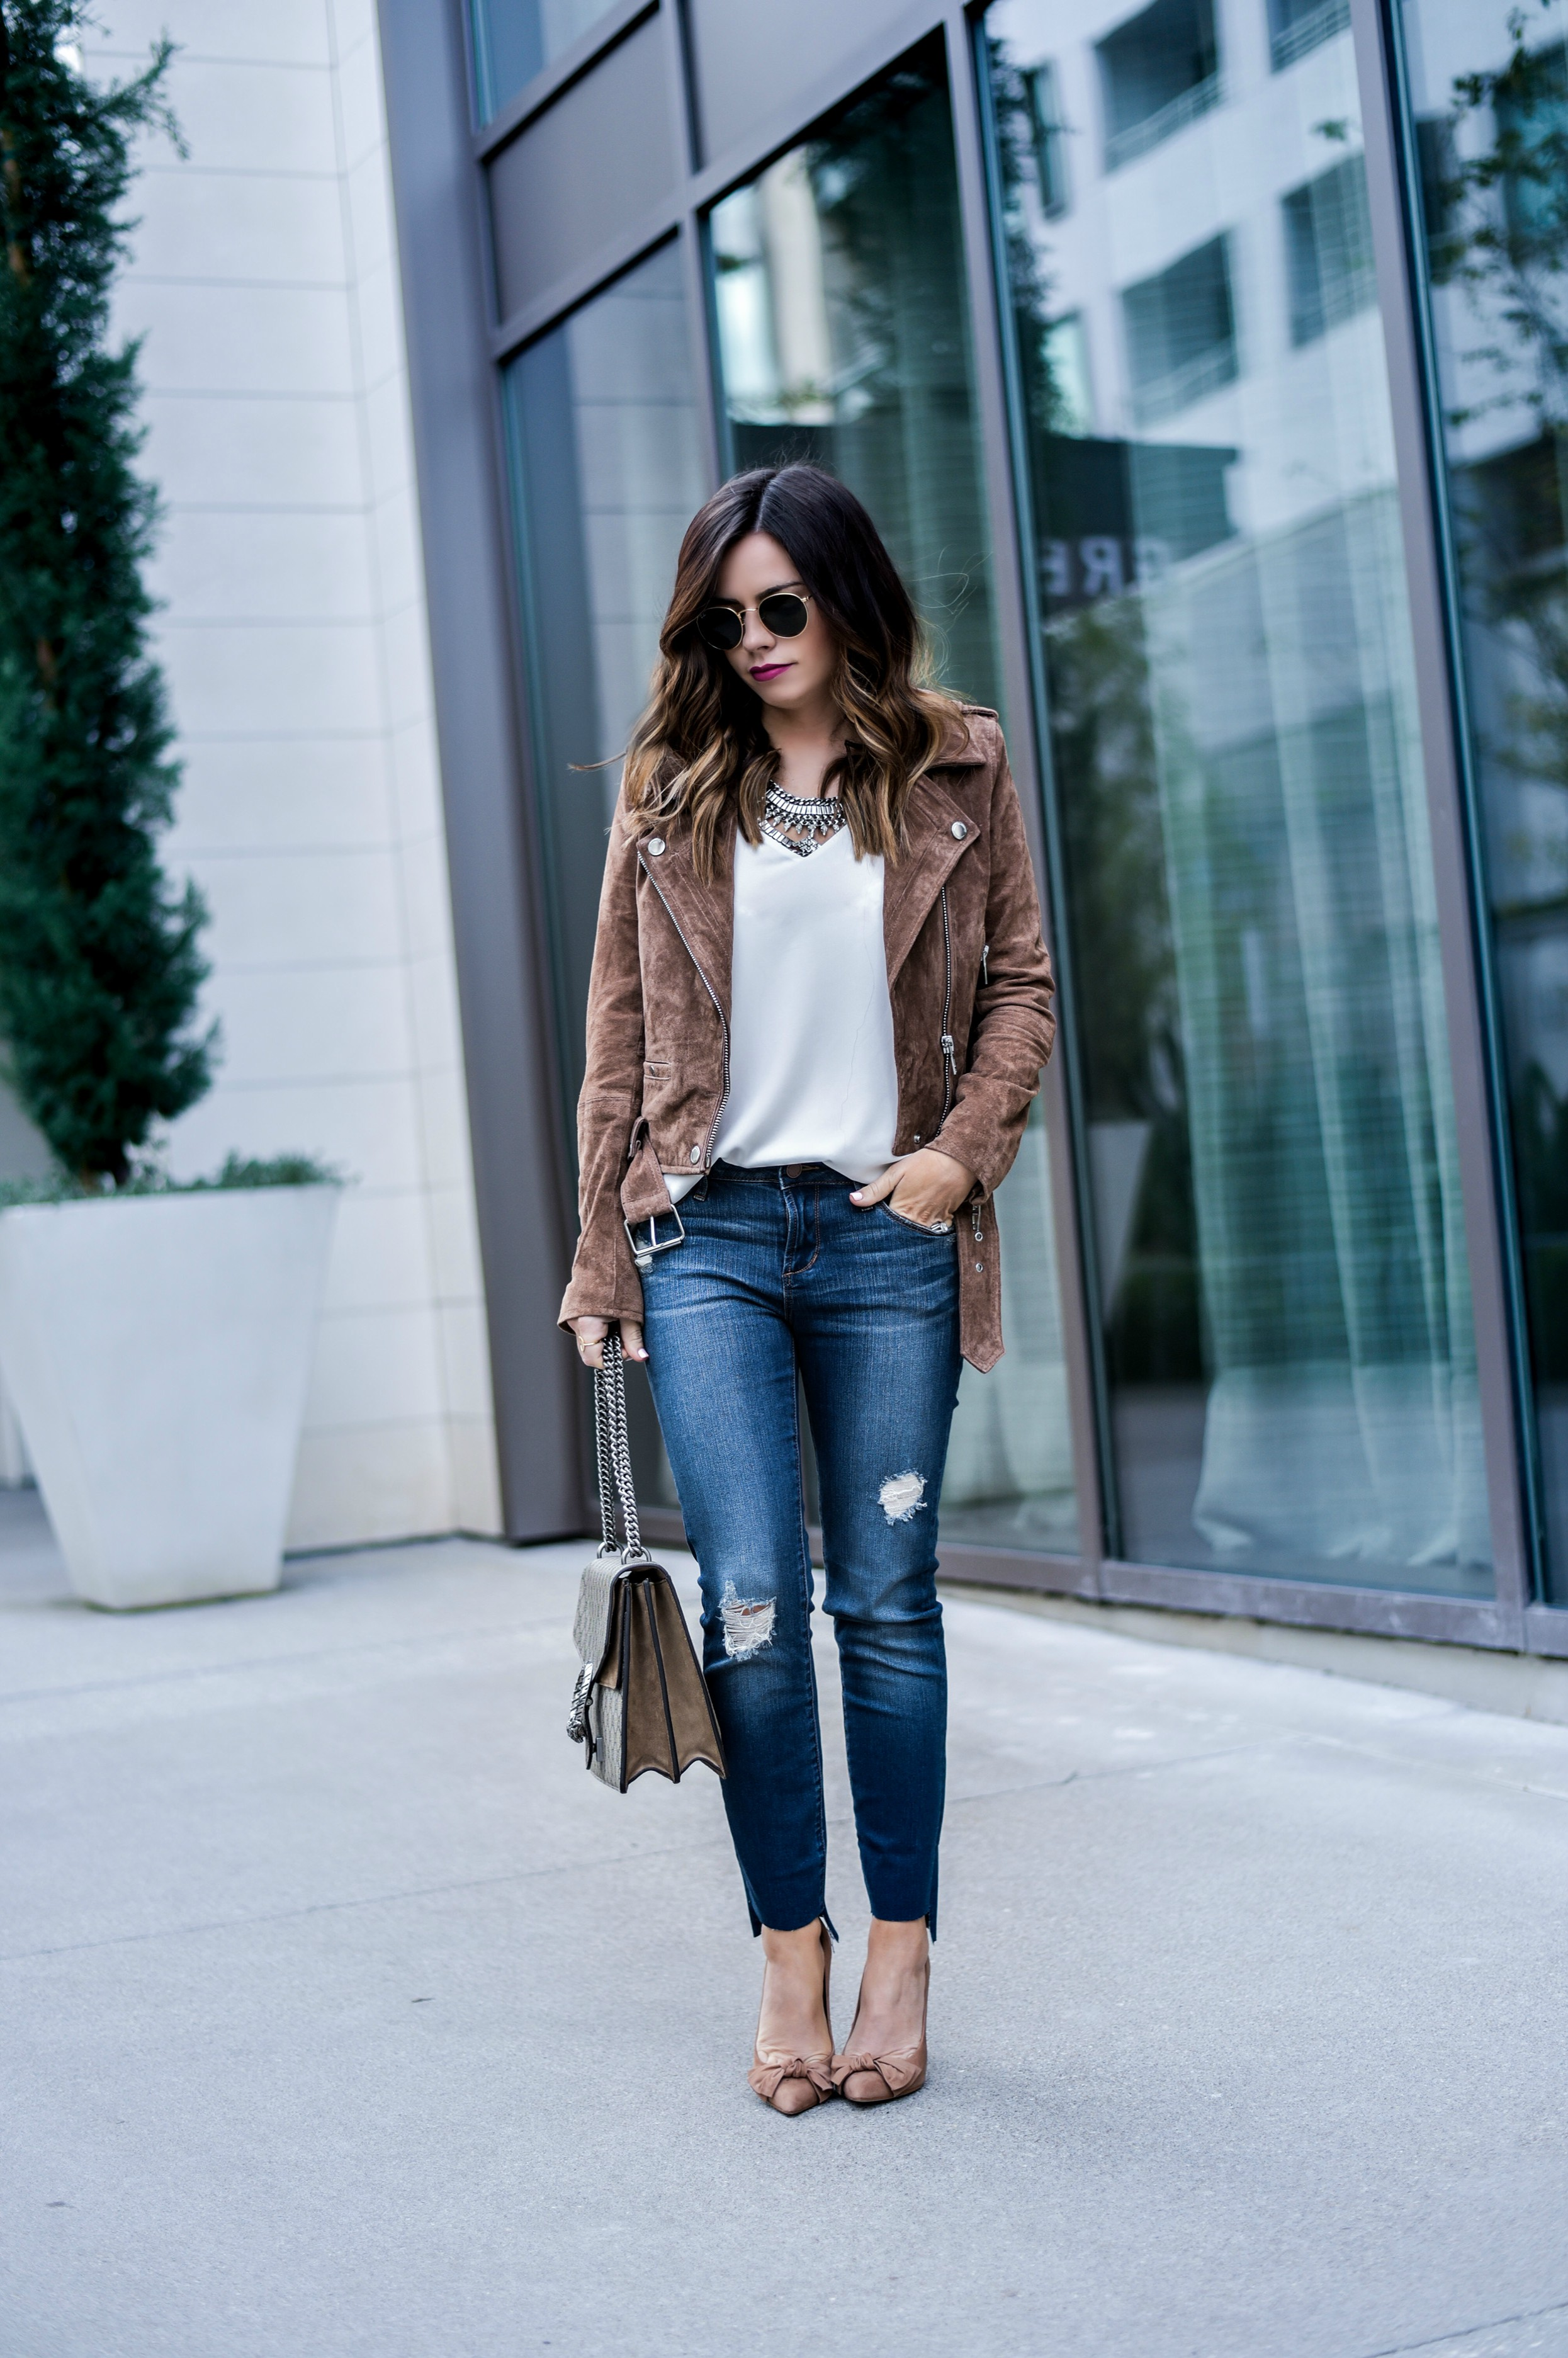 Style blogger Tiffany Jais of Flaunt and Center wearing a BLANKNYC moto jacket with Nordstrom jeans |